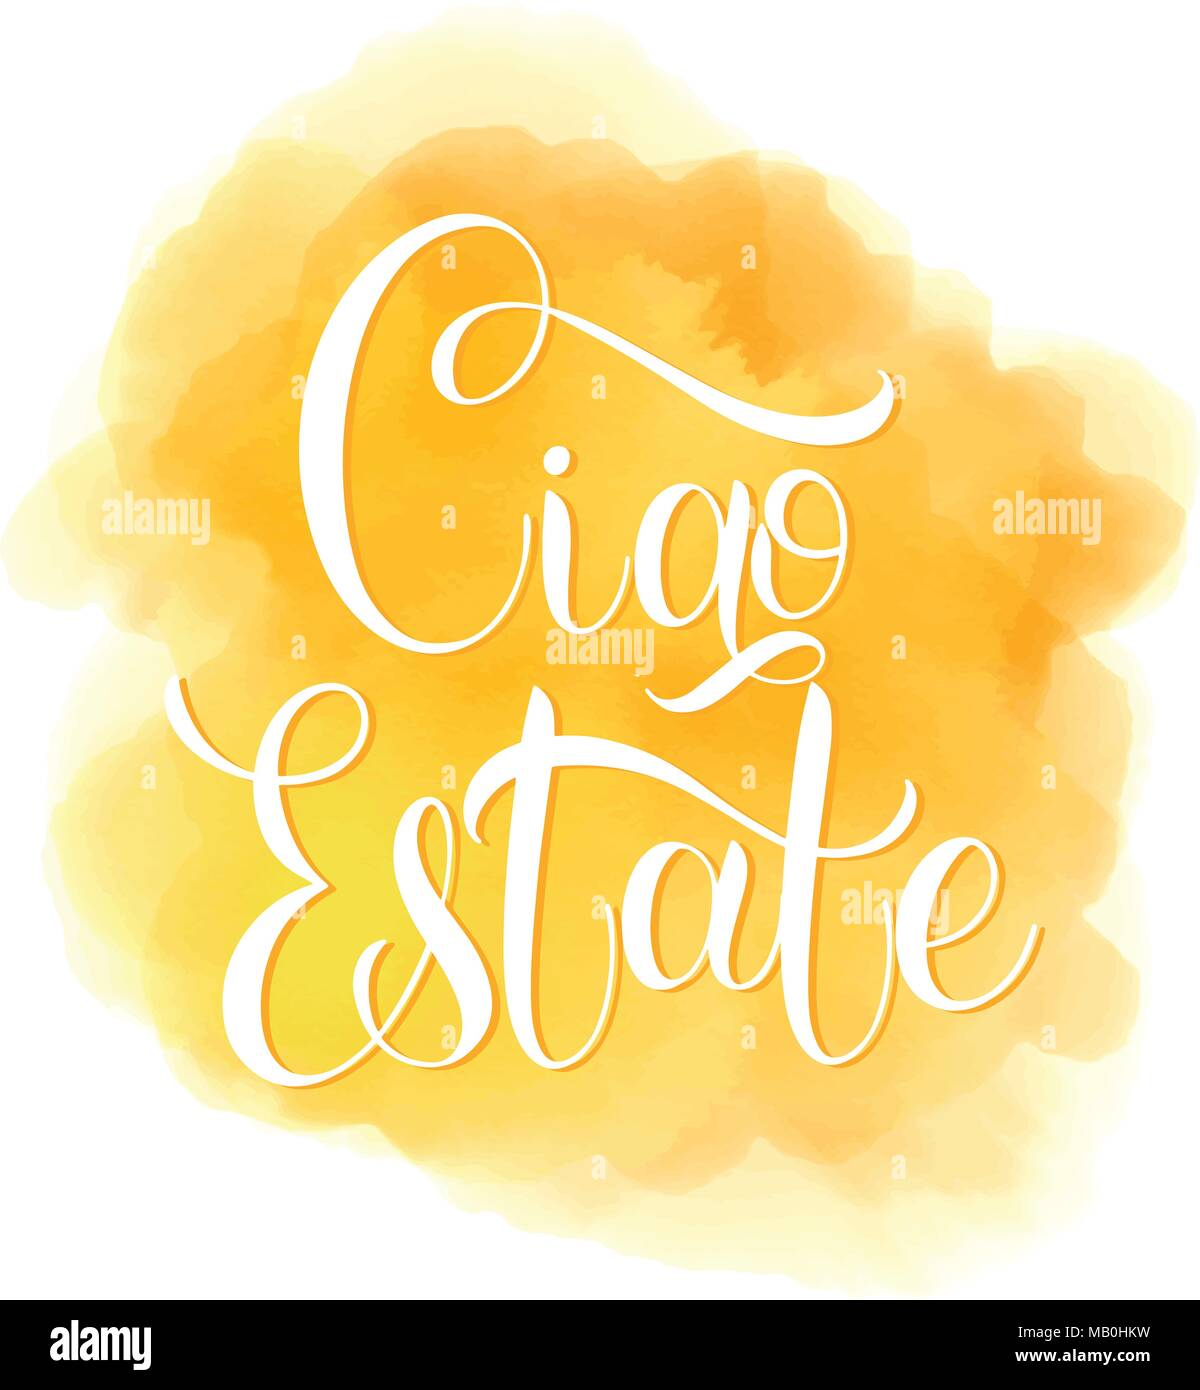 Ciao Estate Hello Summer Lettering On Italian Elements For